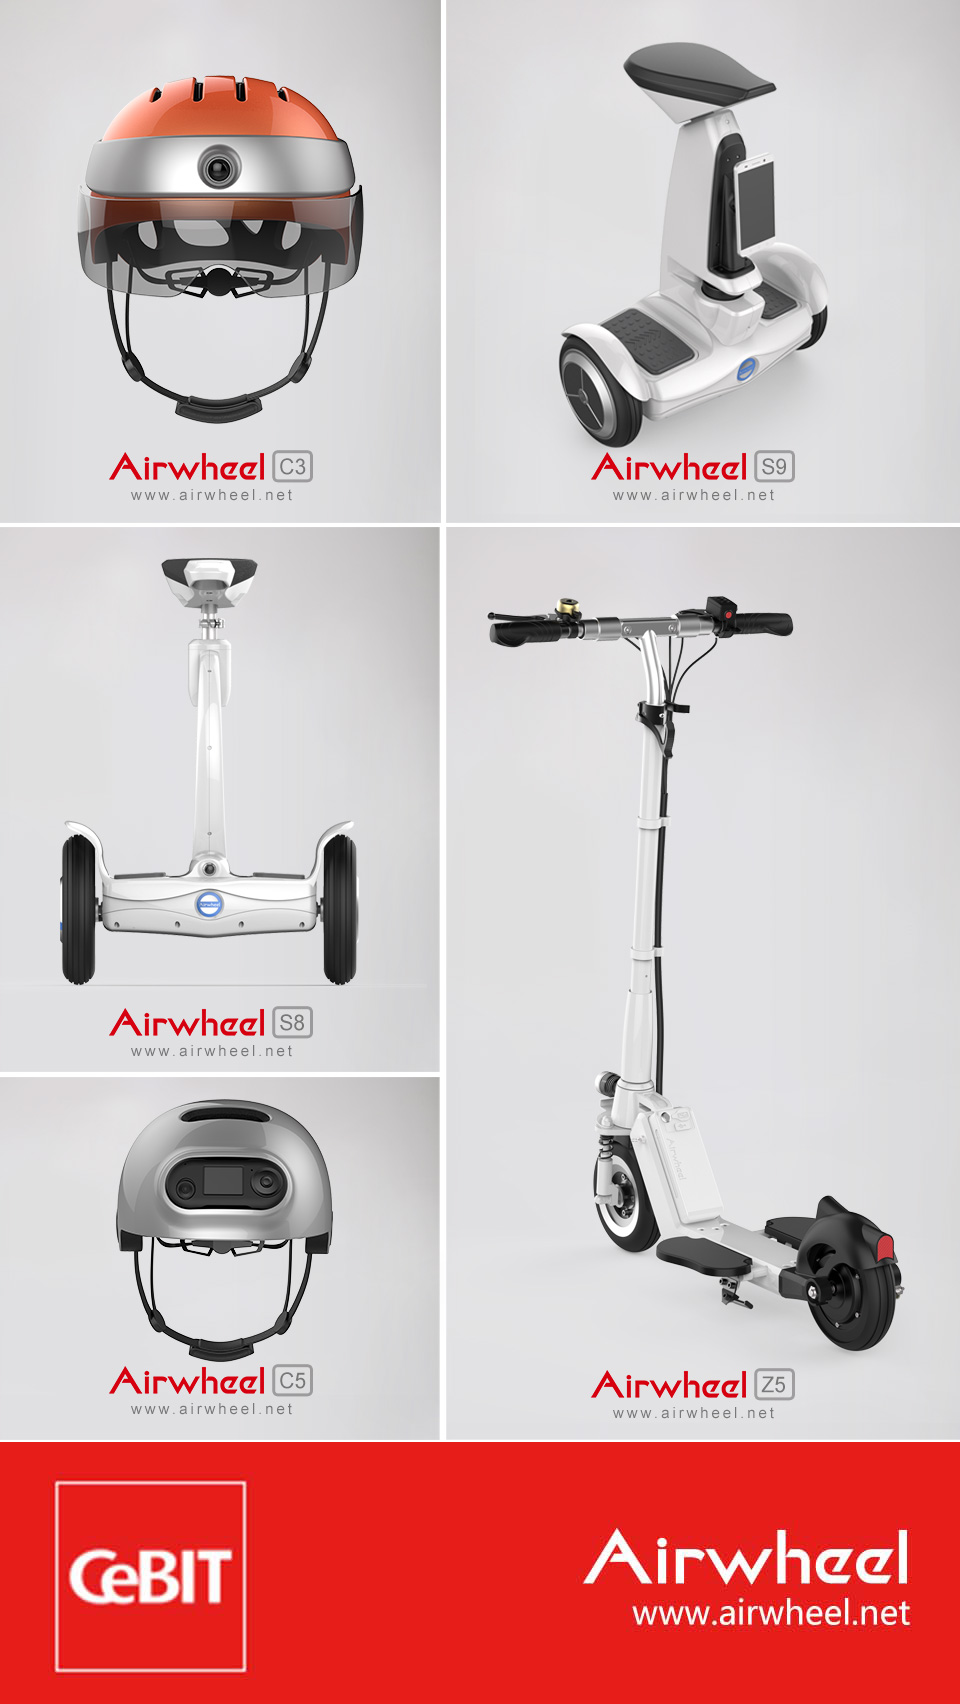 cool street bike helmets airwheel c3